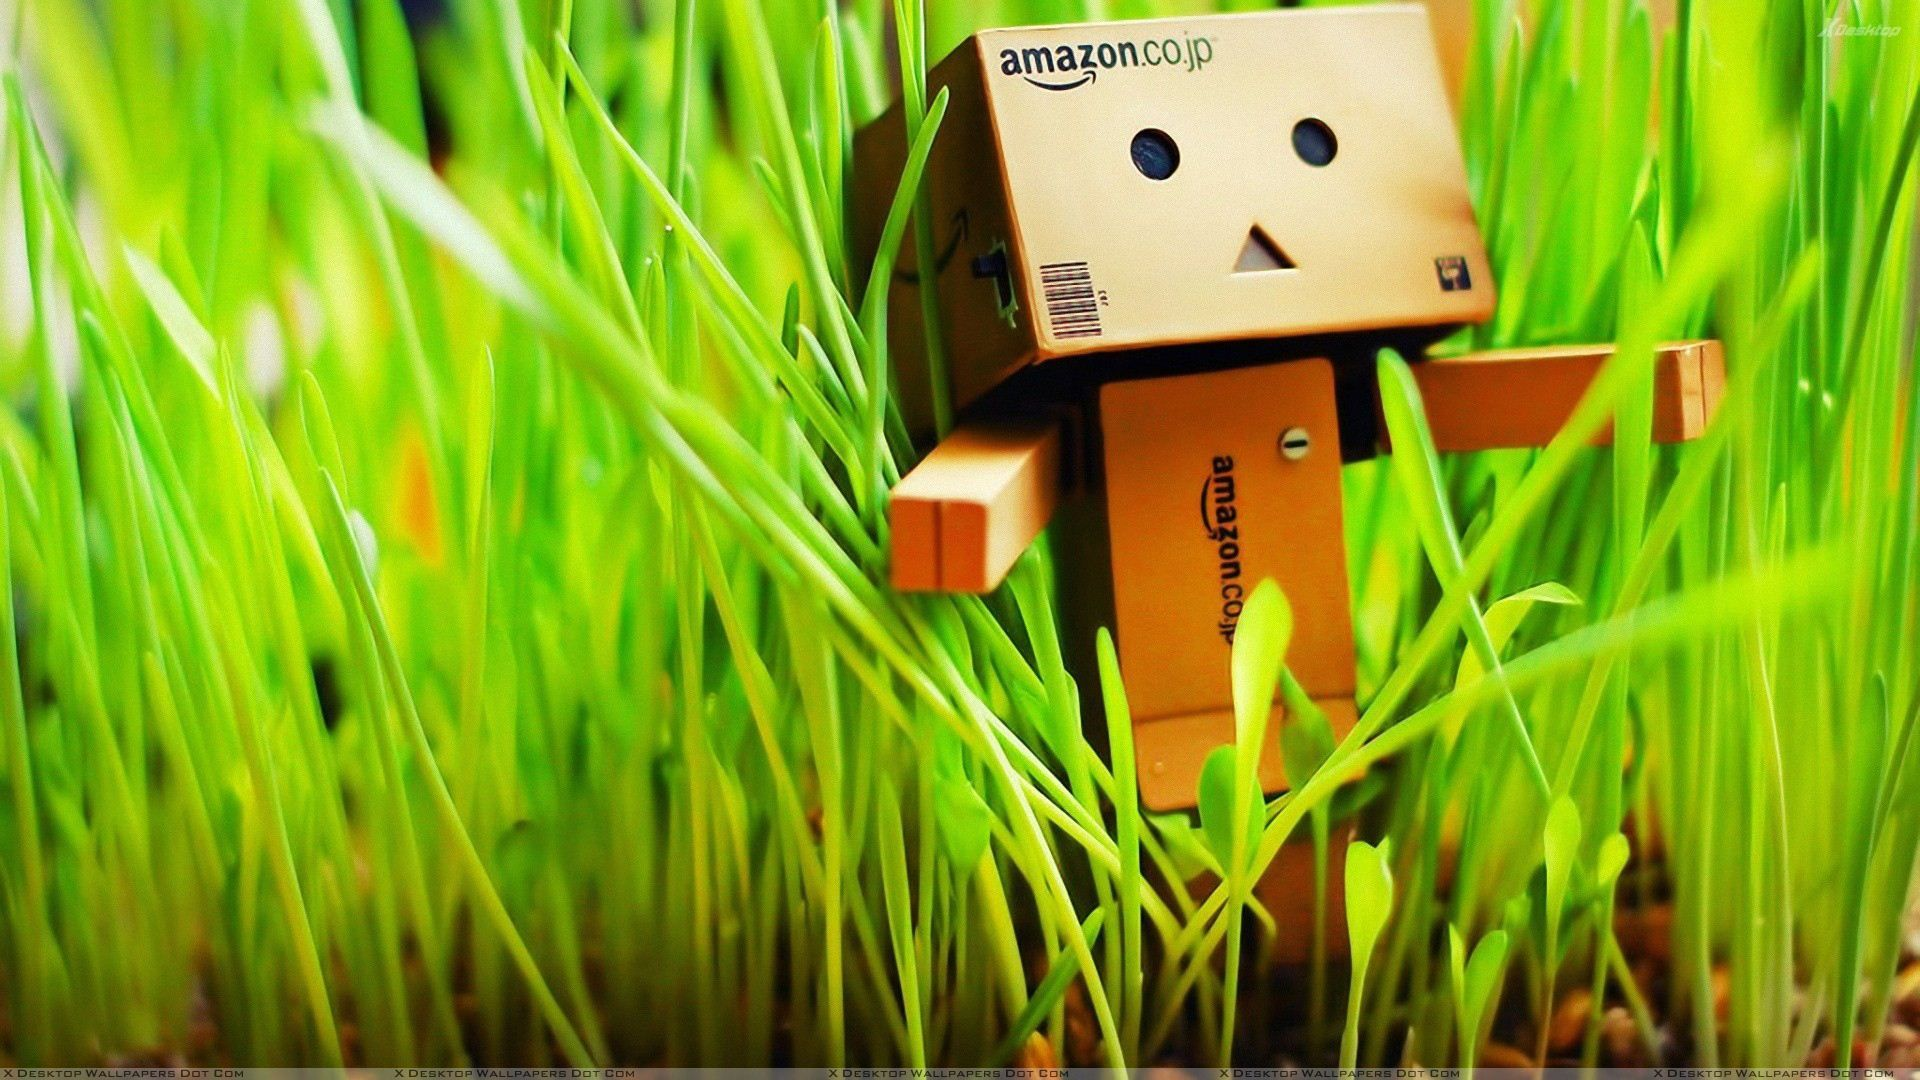 Amazon Box In Grass Wallpapers